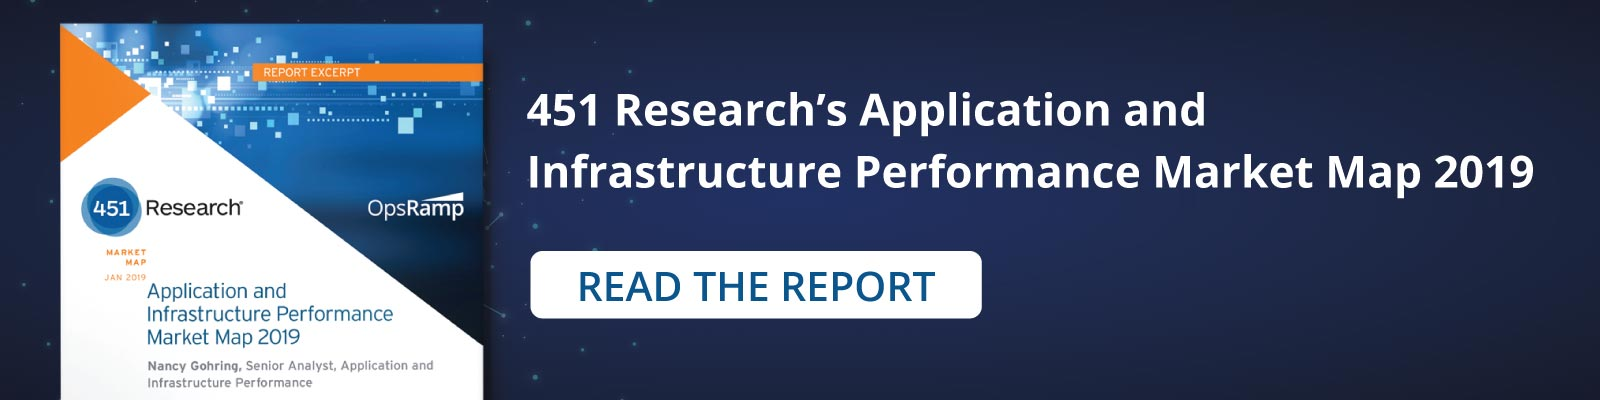 451 Research Market Map 2019 cta